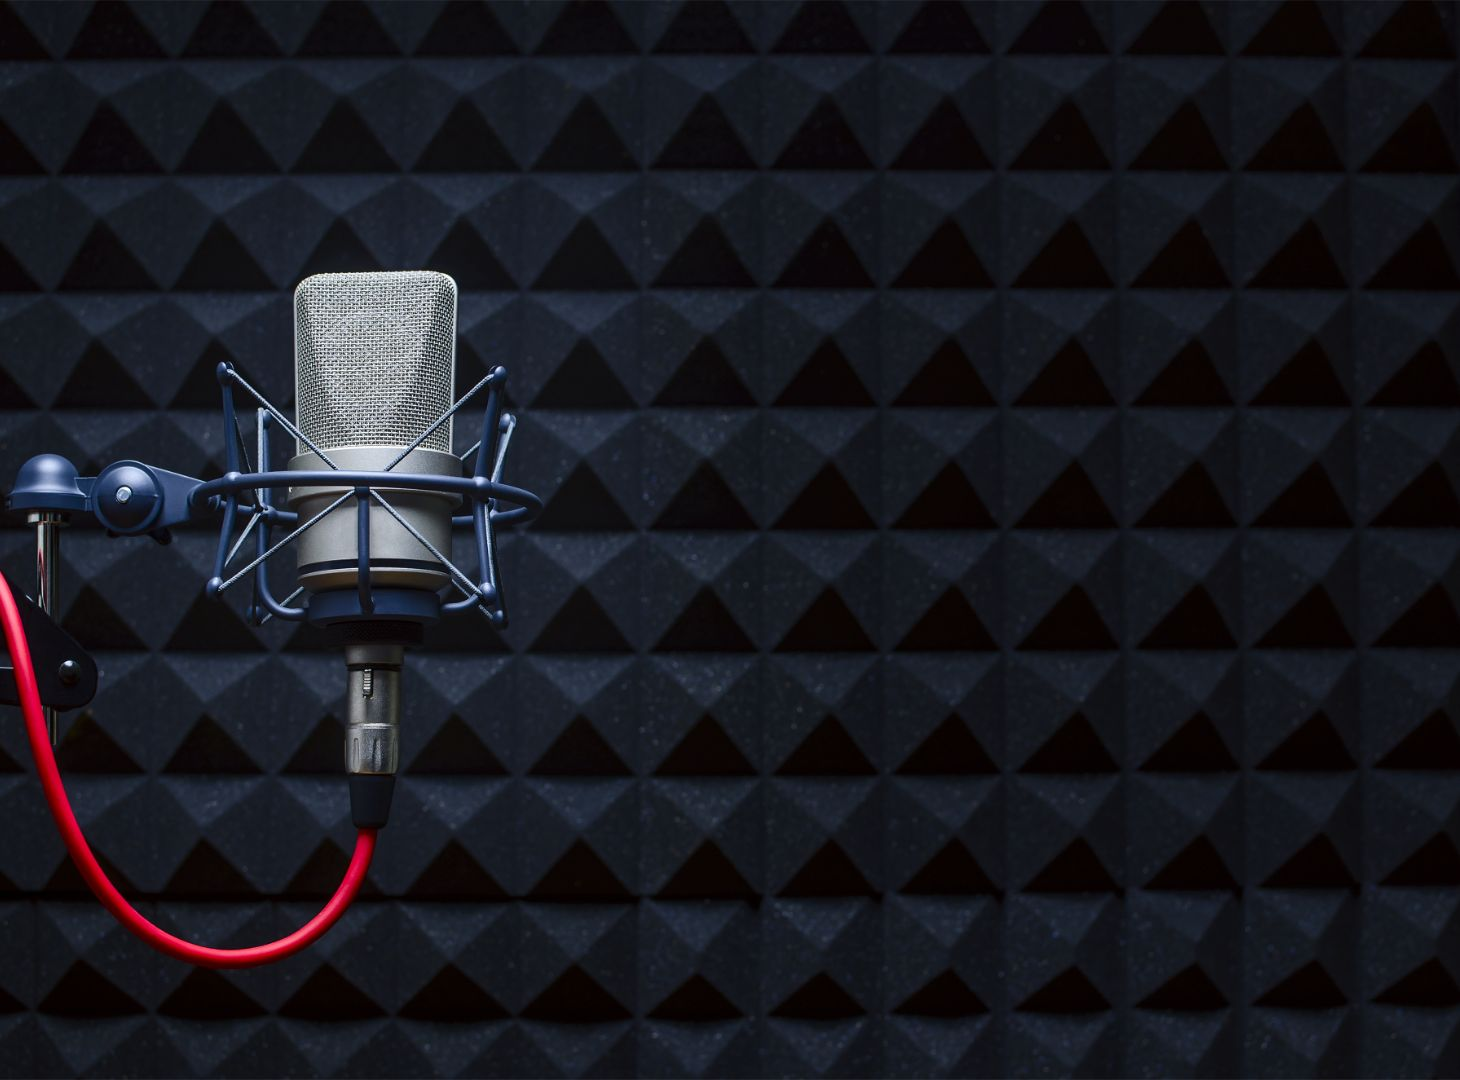 Microphone in a soundproof booth